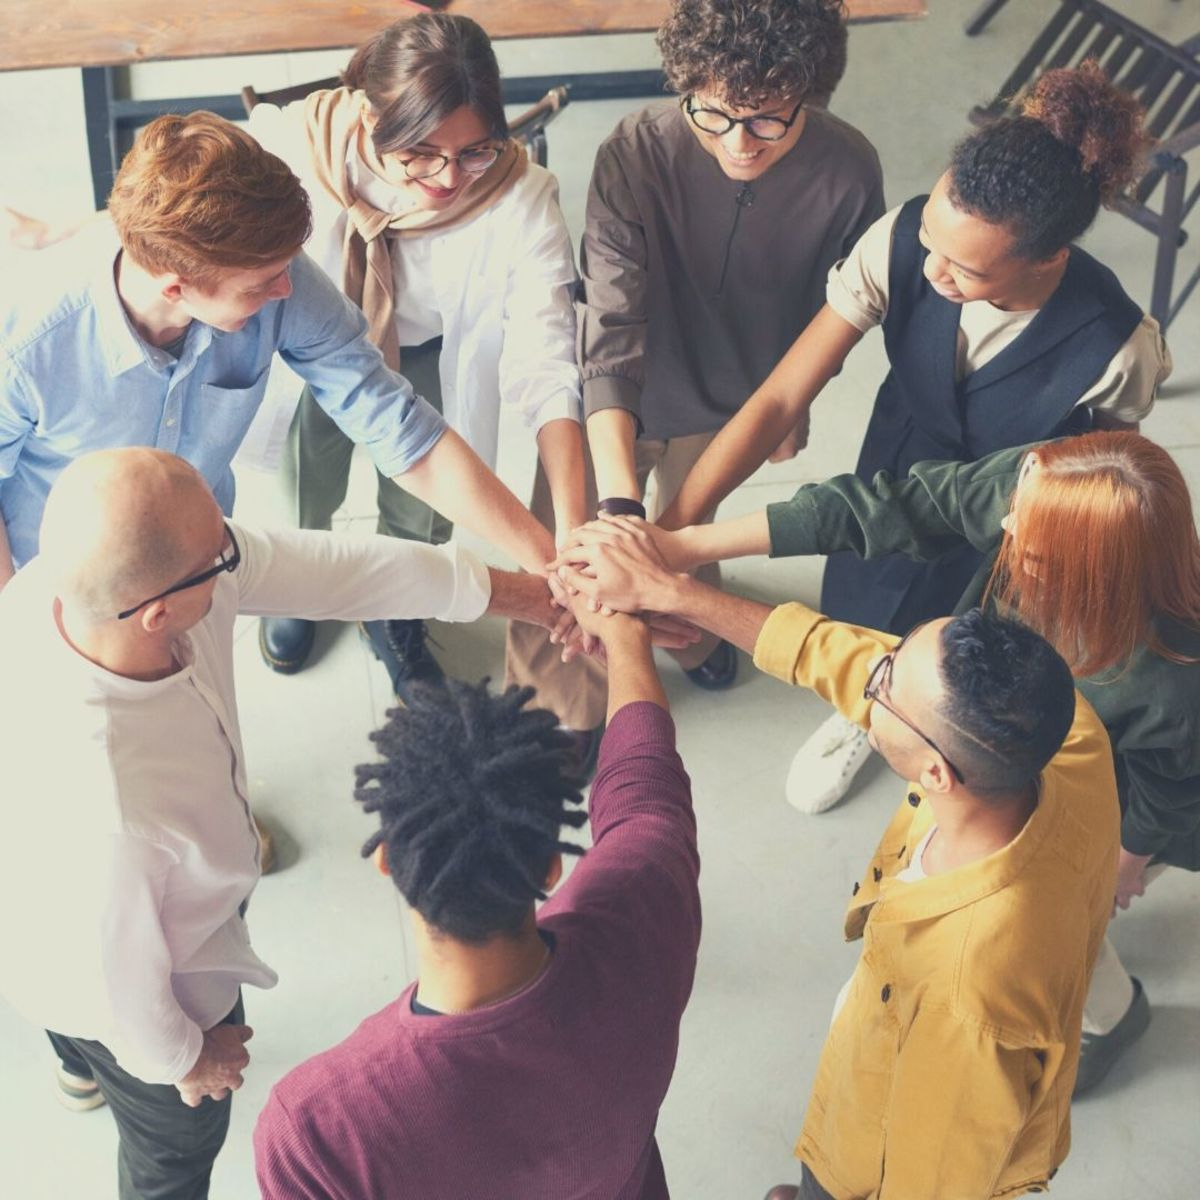 Teamwork makes the dream work—coming up with a great name for your team will bring you together and encourage a fun, competitive atmosphere!